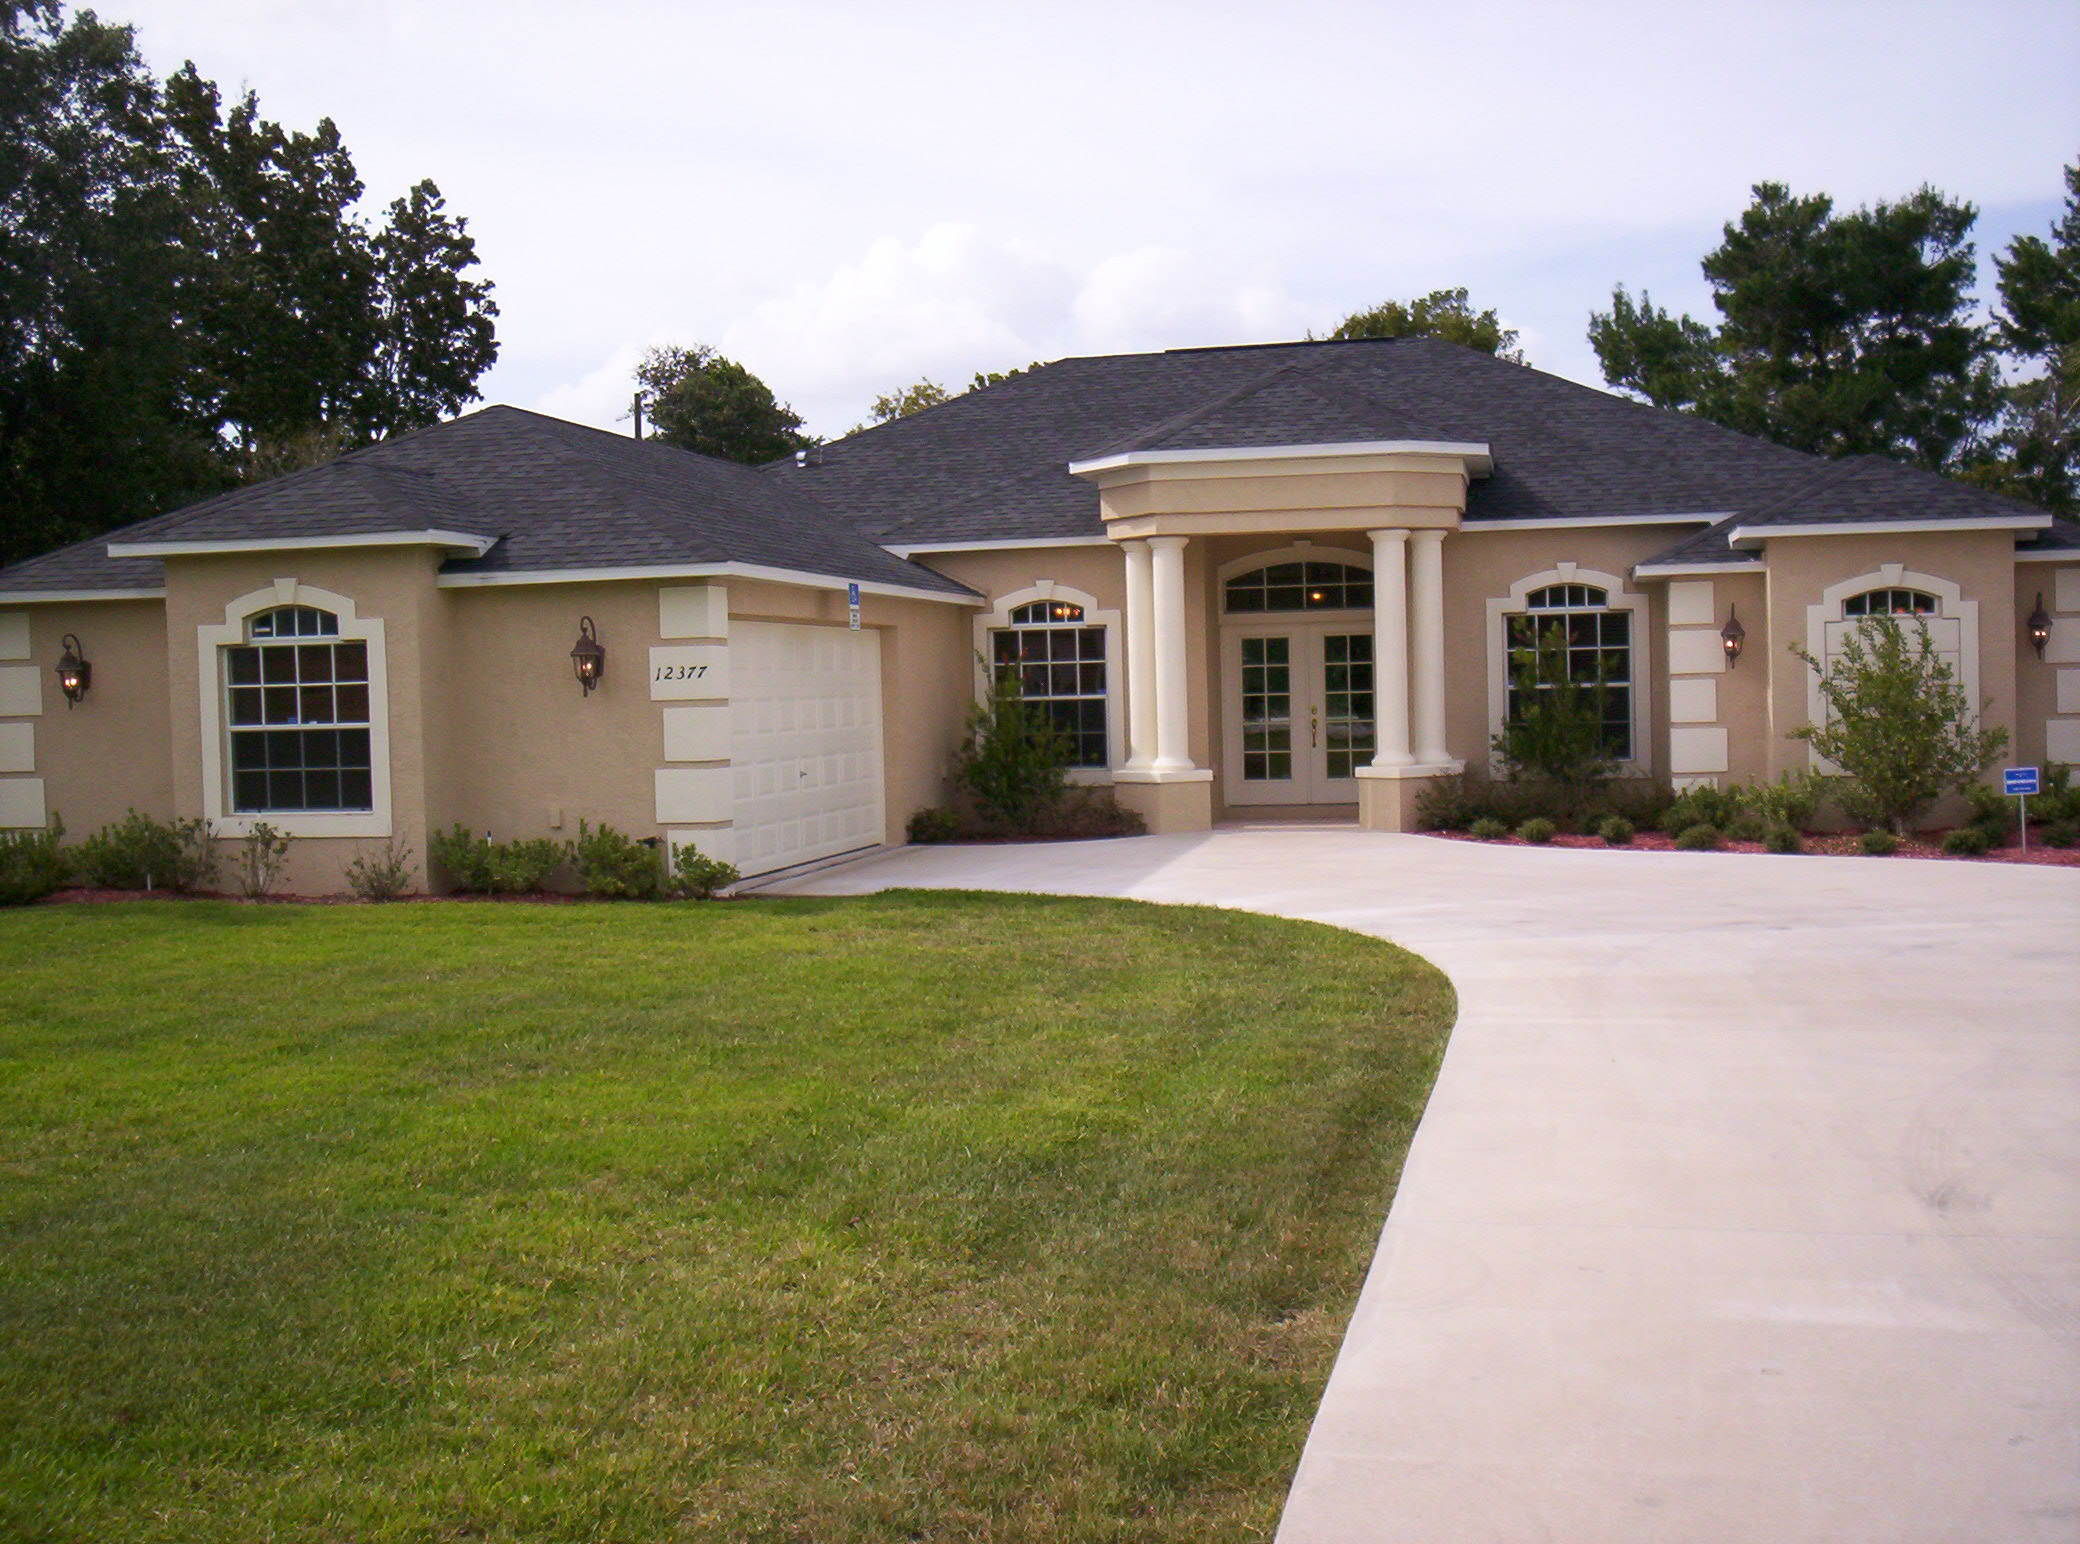 Spec homes for sale model homes for sale in citrus county for The model house